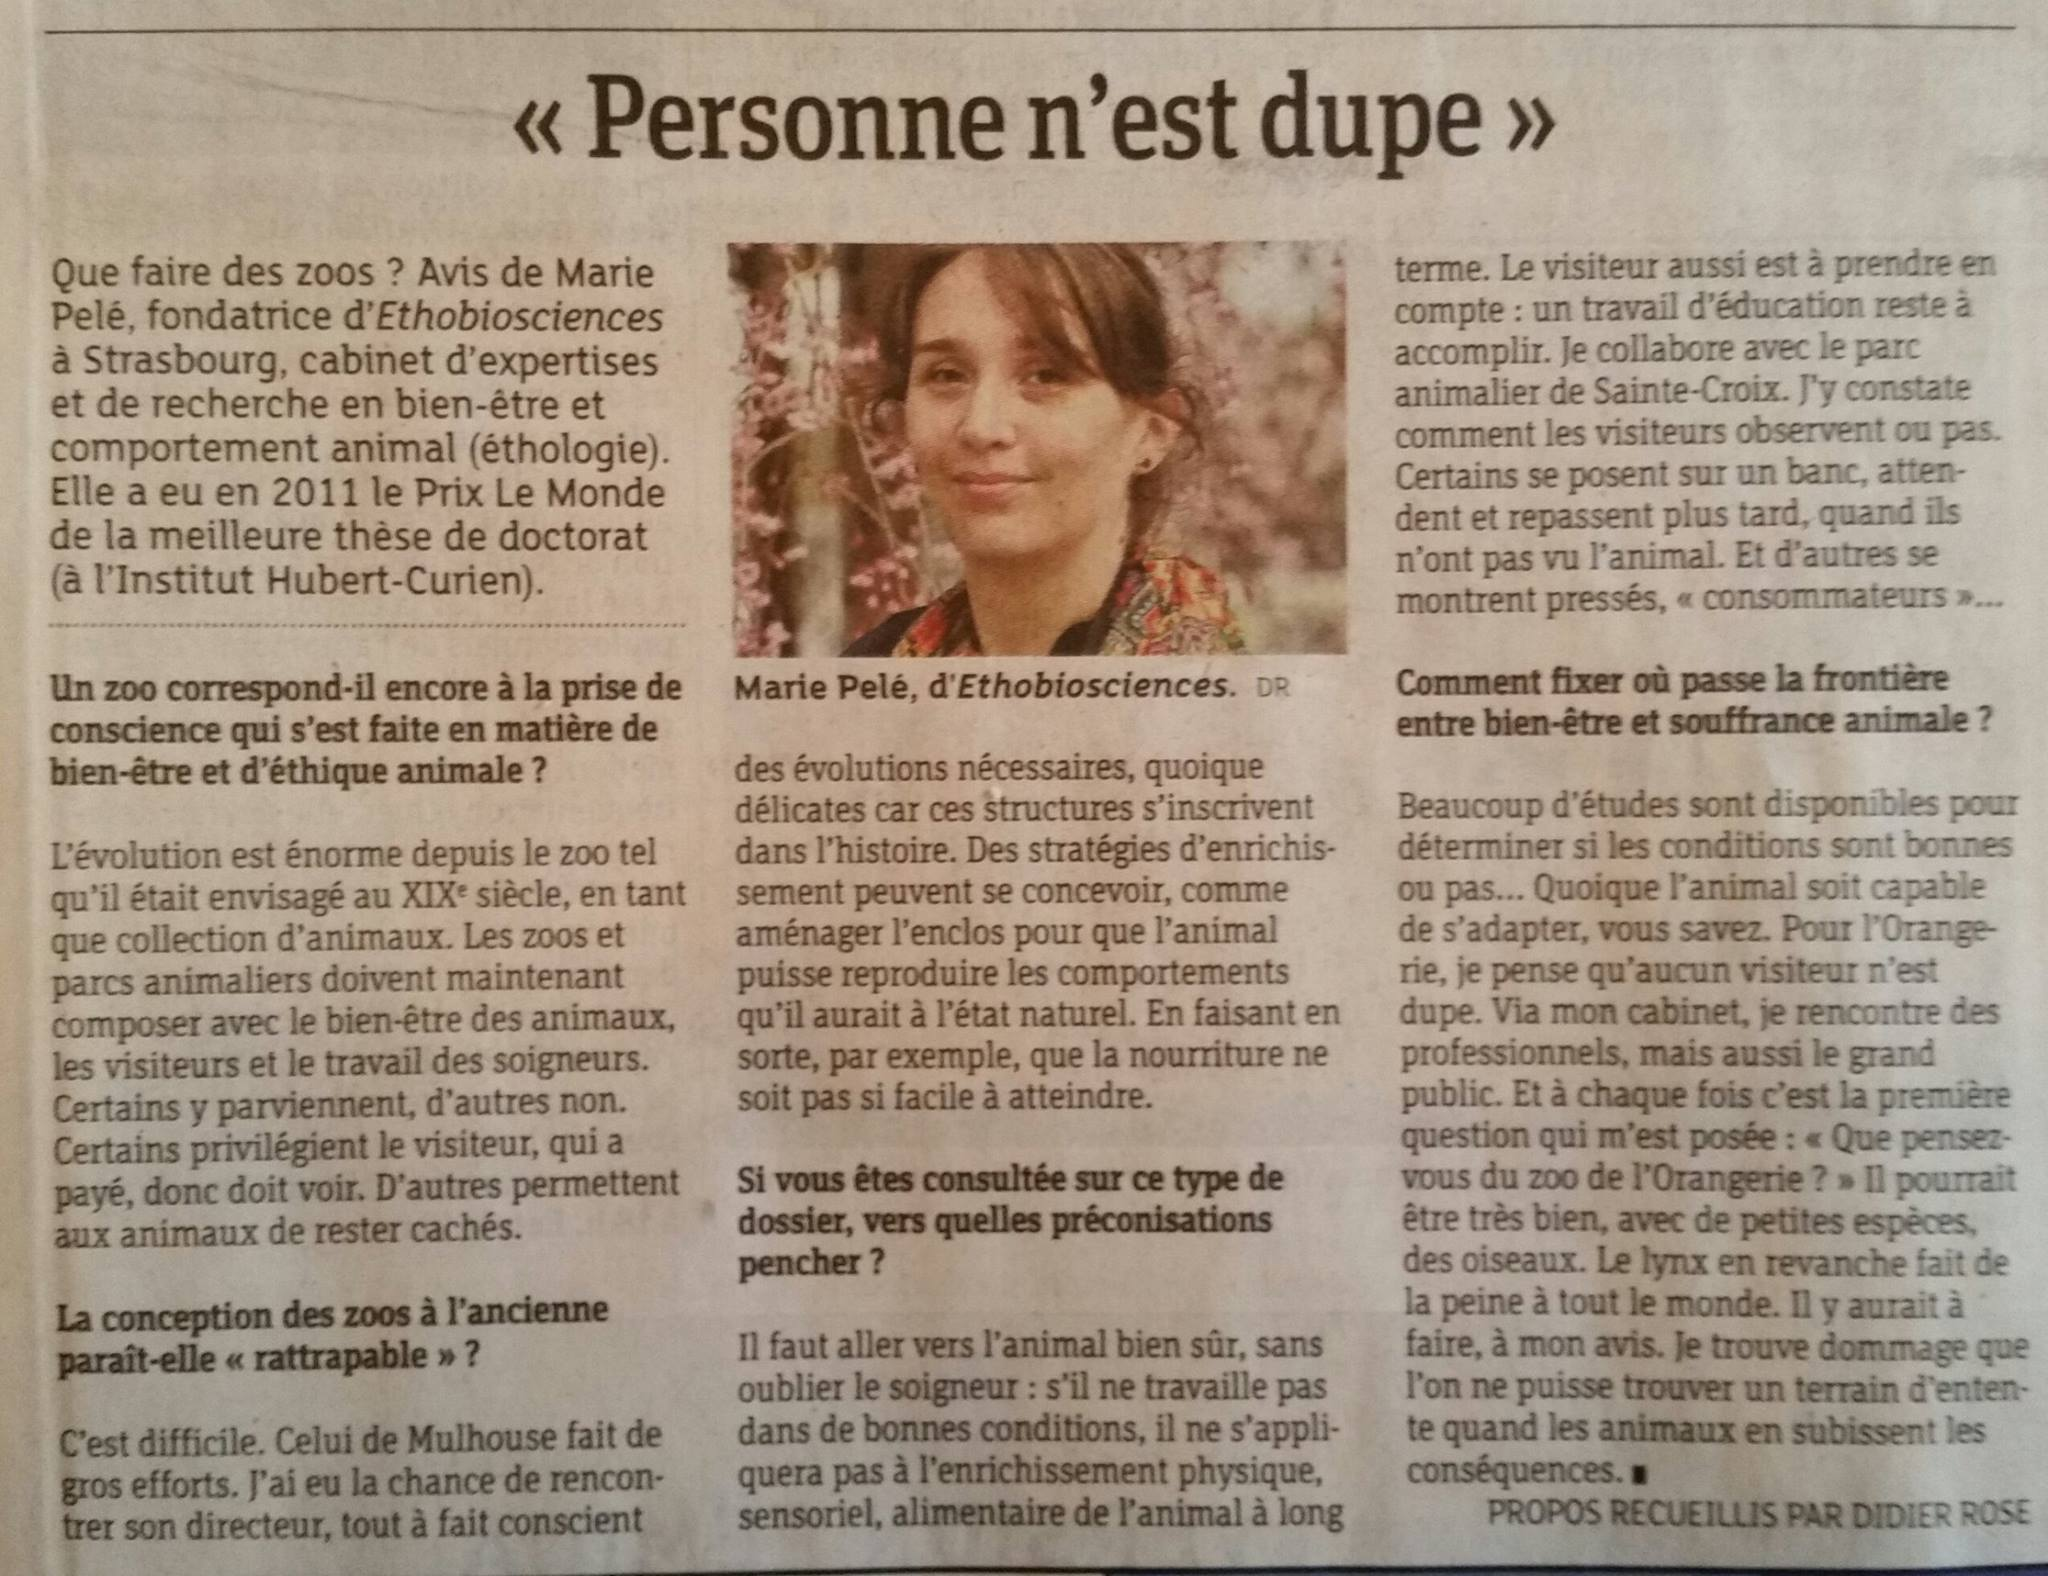 article dna 2016 personne nest dupe.jpg